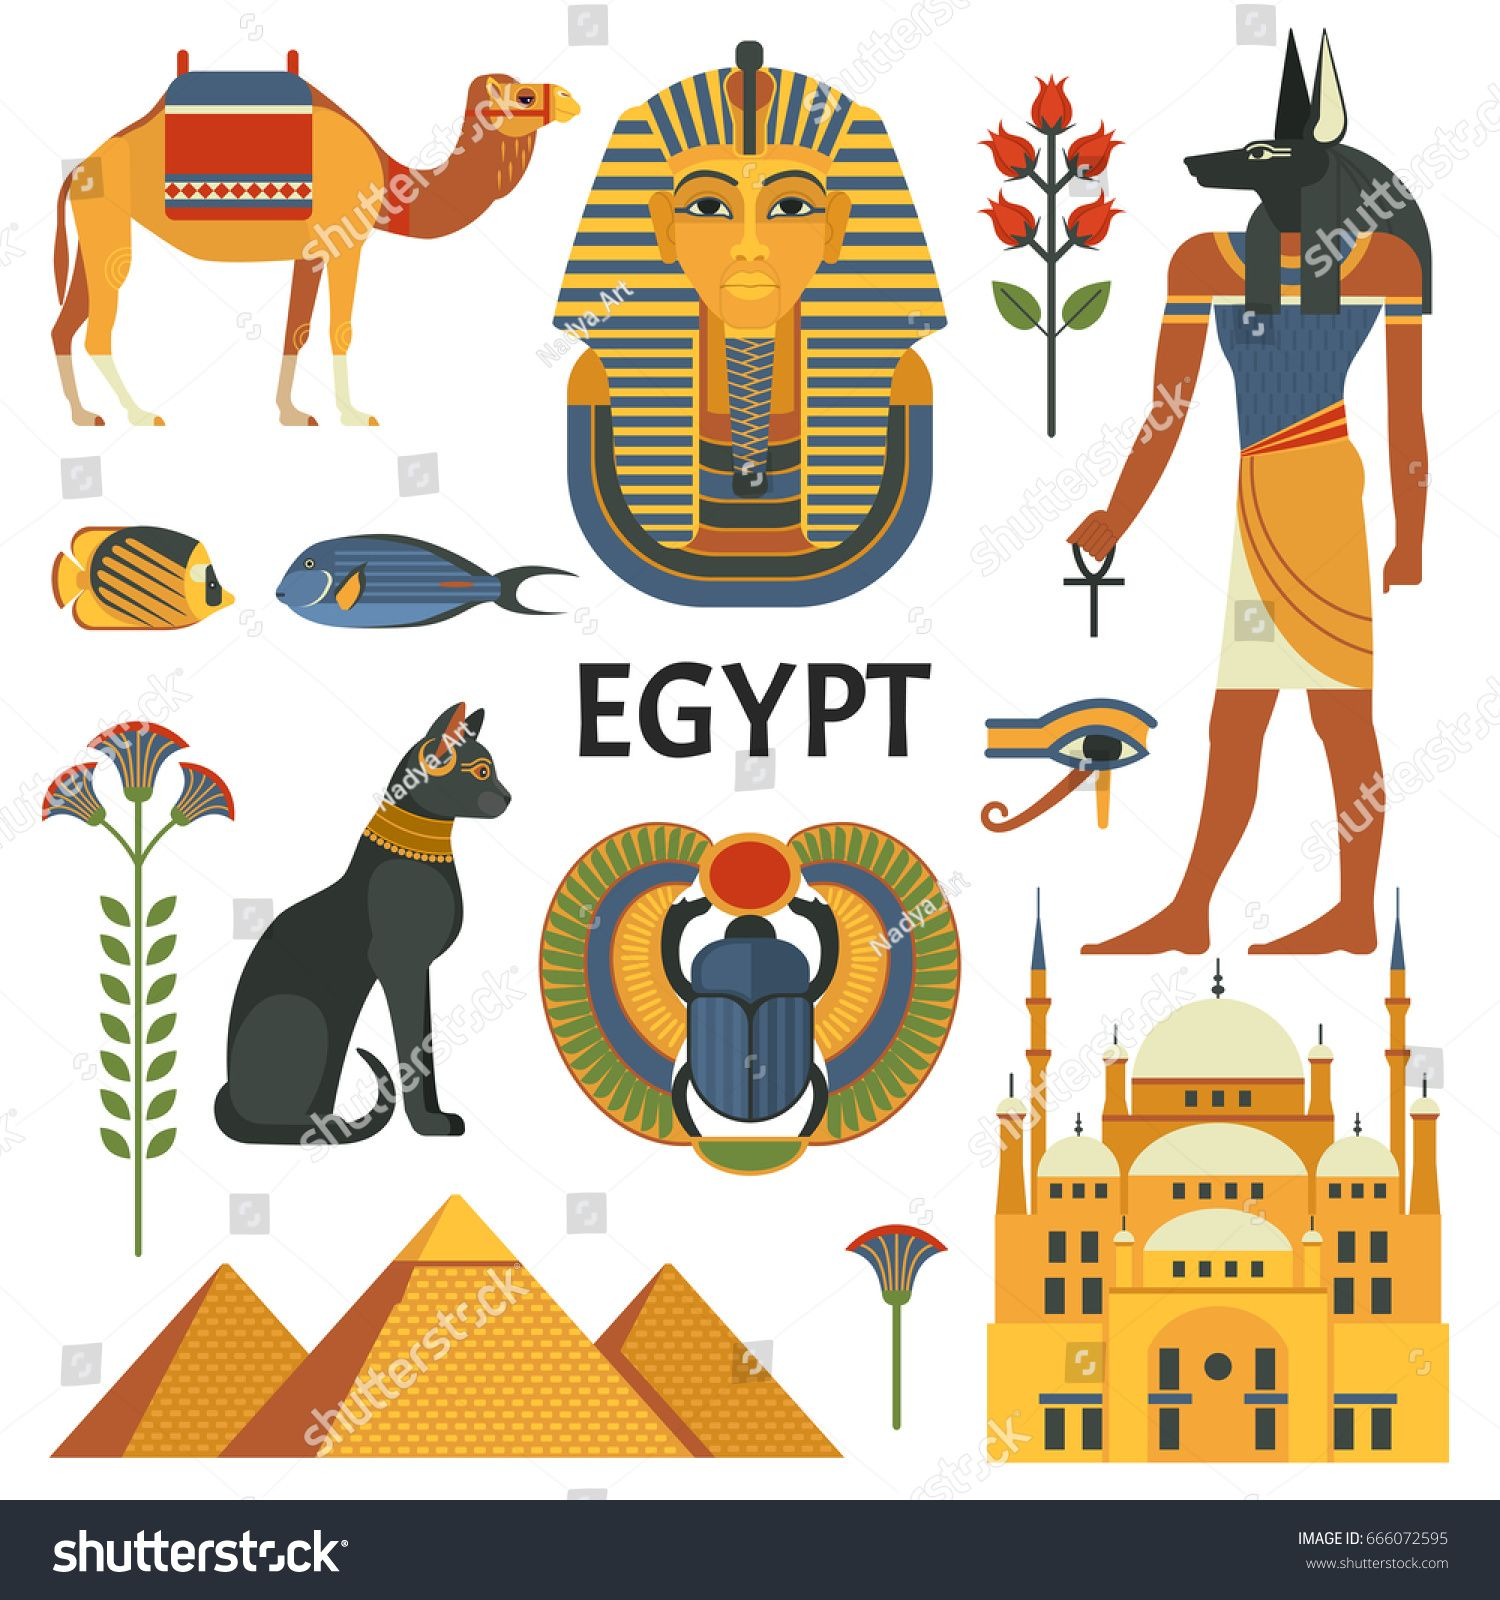 Edit Vectors Free Online Egypt icons in 2020 Ancient